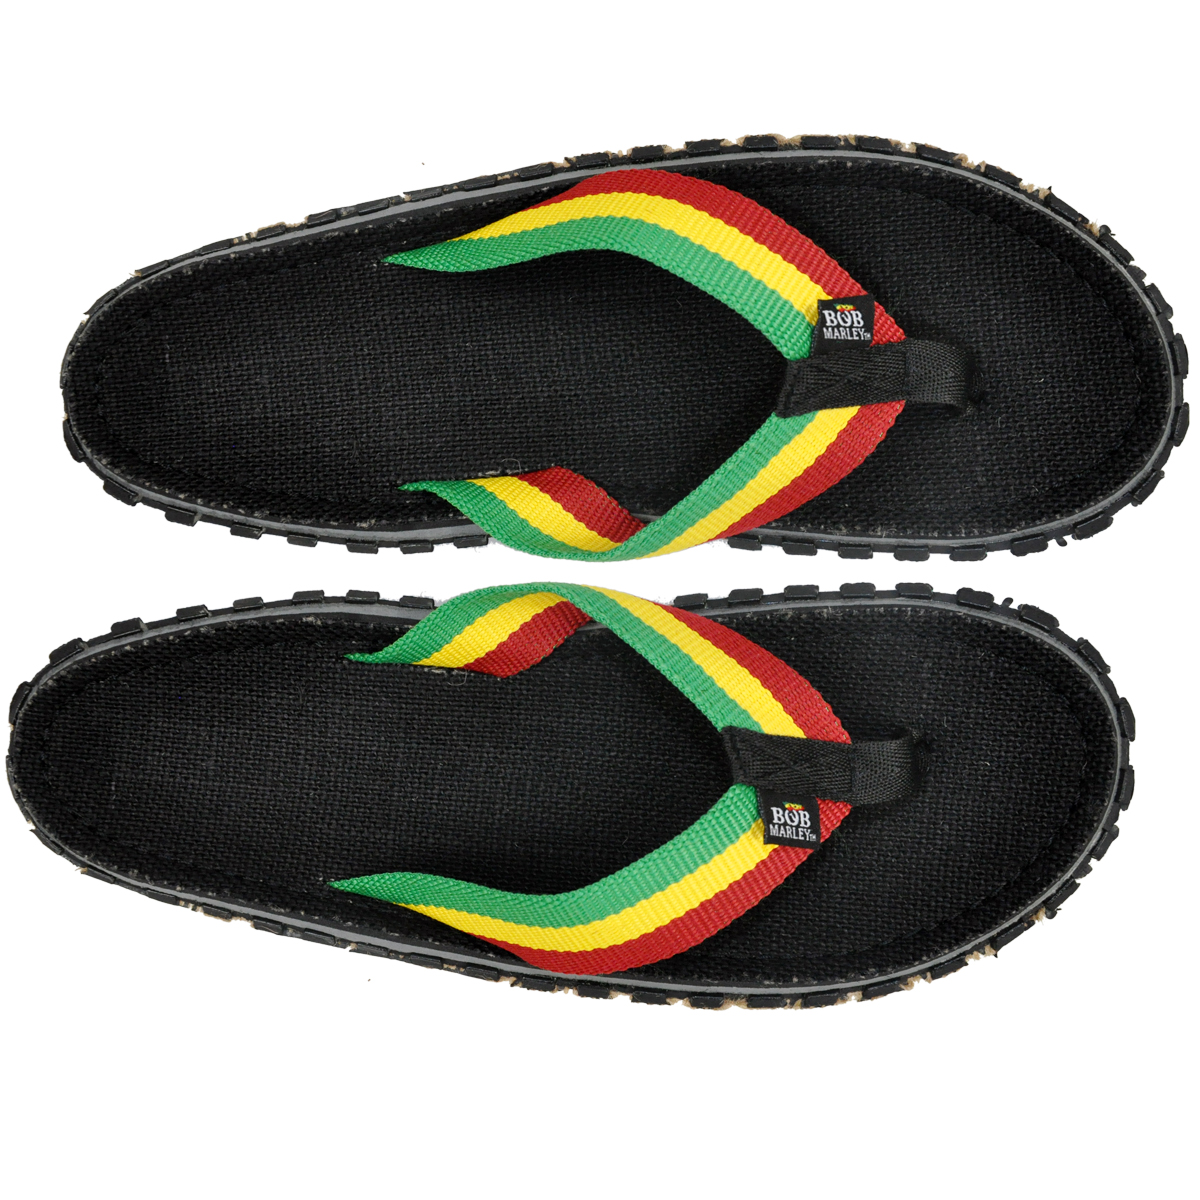 Bob Marley Fresco Black Sandals Men S